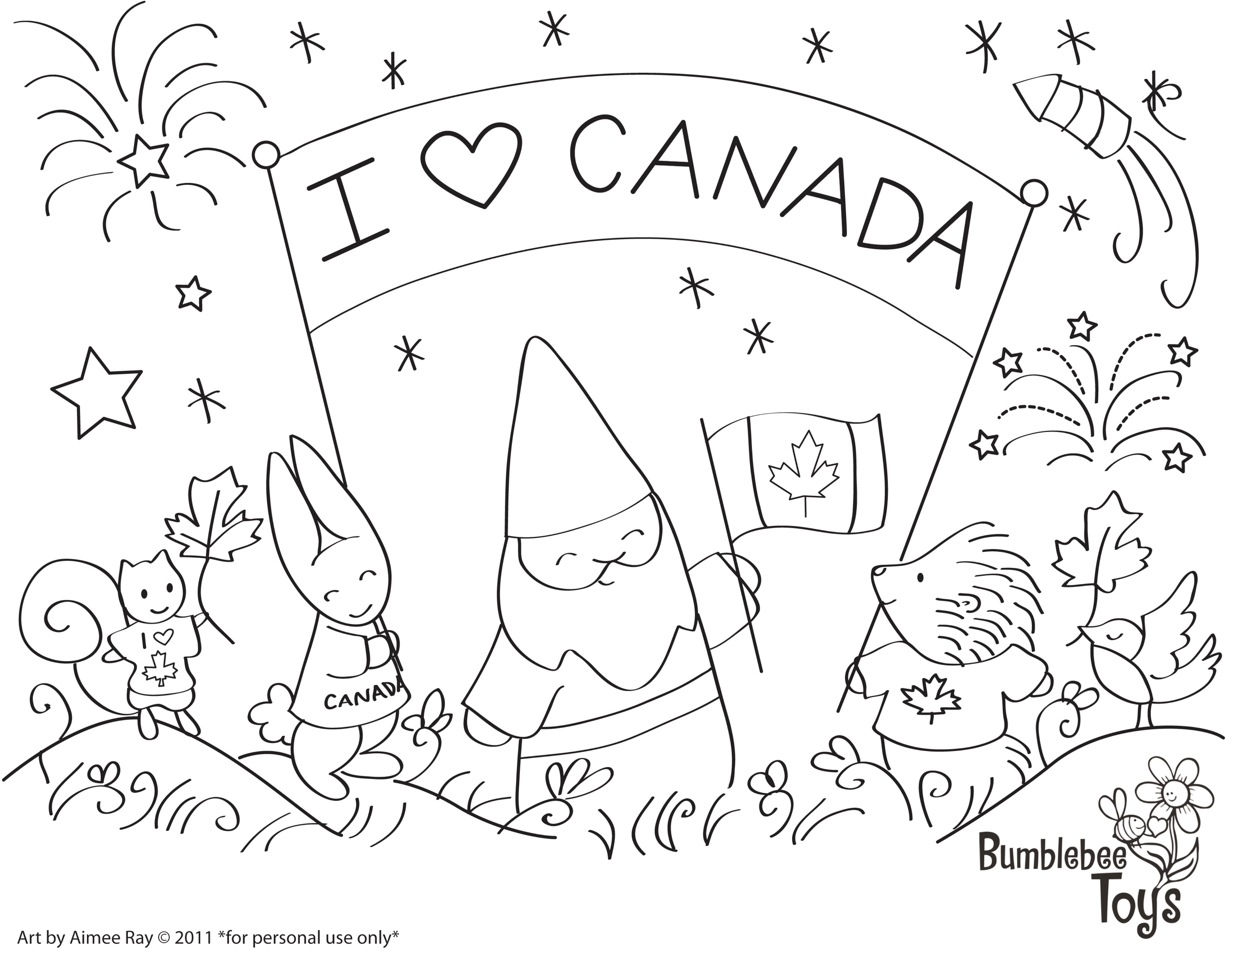 canada day coloring pages - photo#14